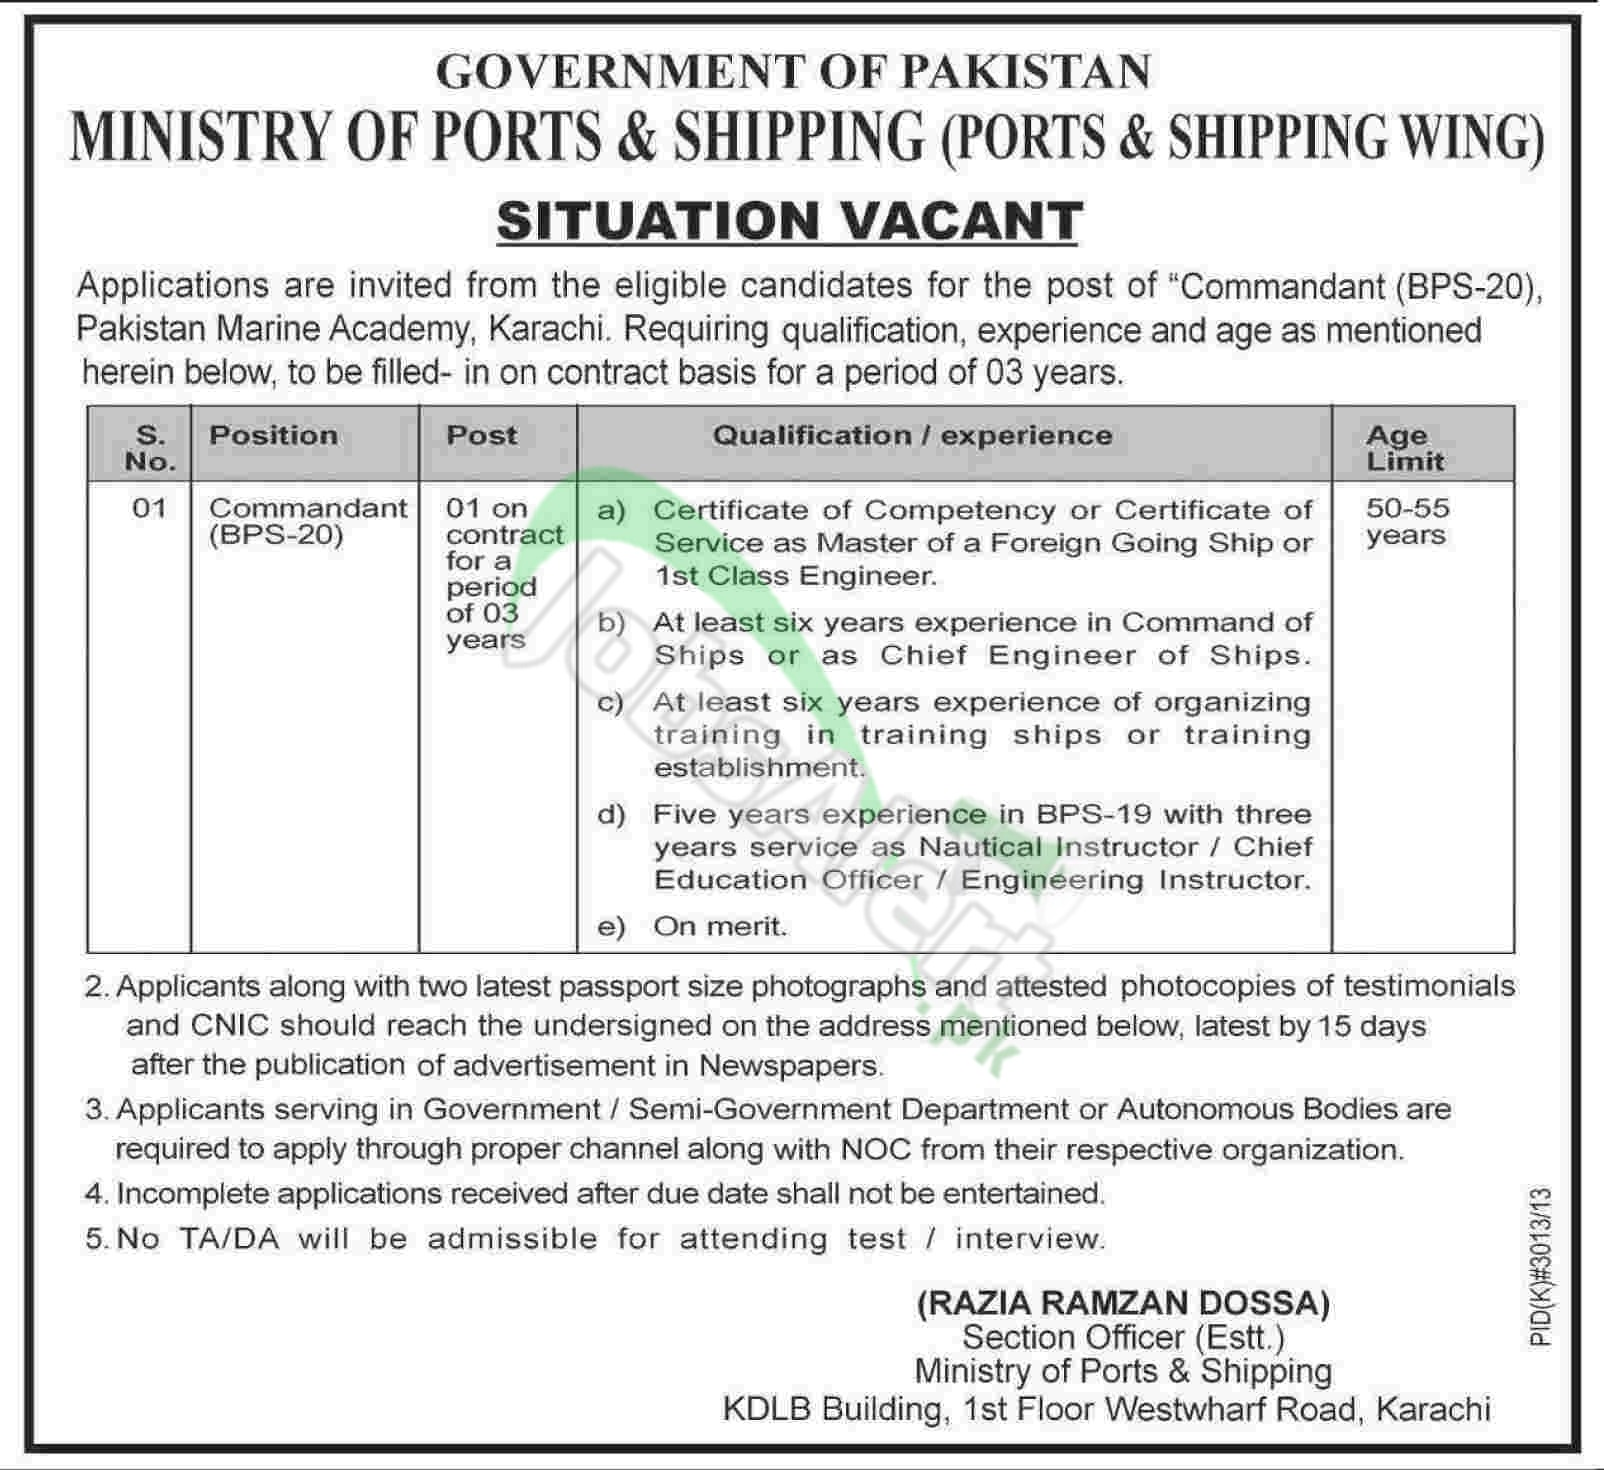 Ministry of Ports & Shipping